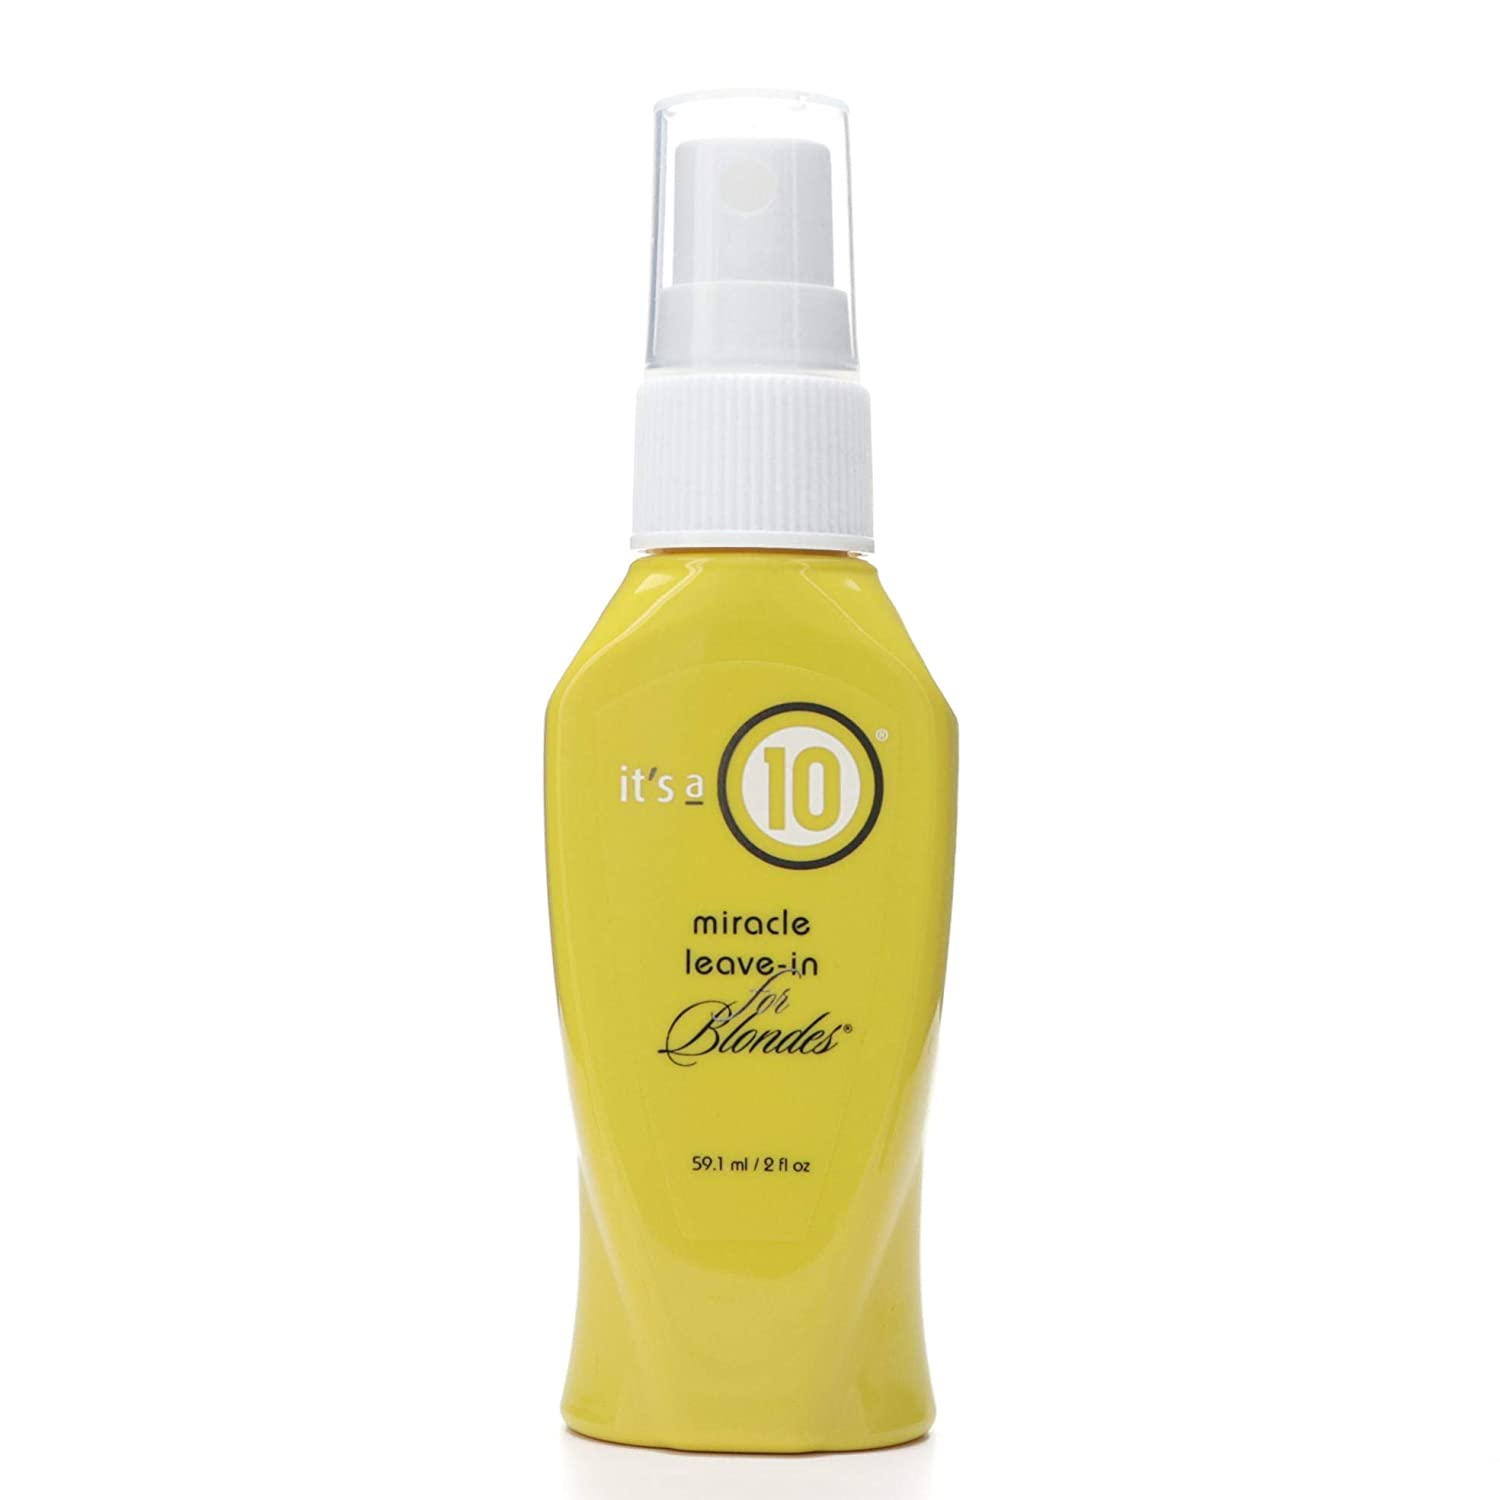 It's a 10 Haircare Miracle Leave-in for Blondes, 2 fl. oz.